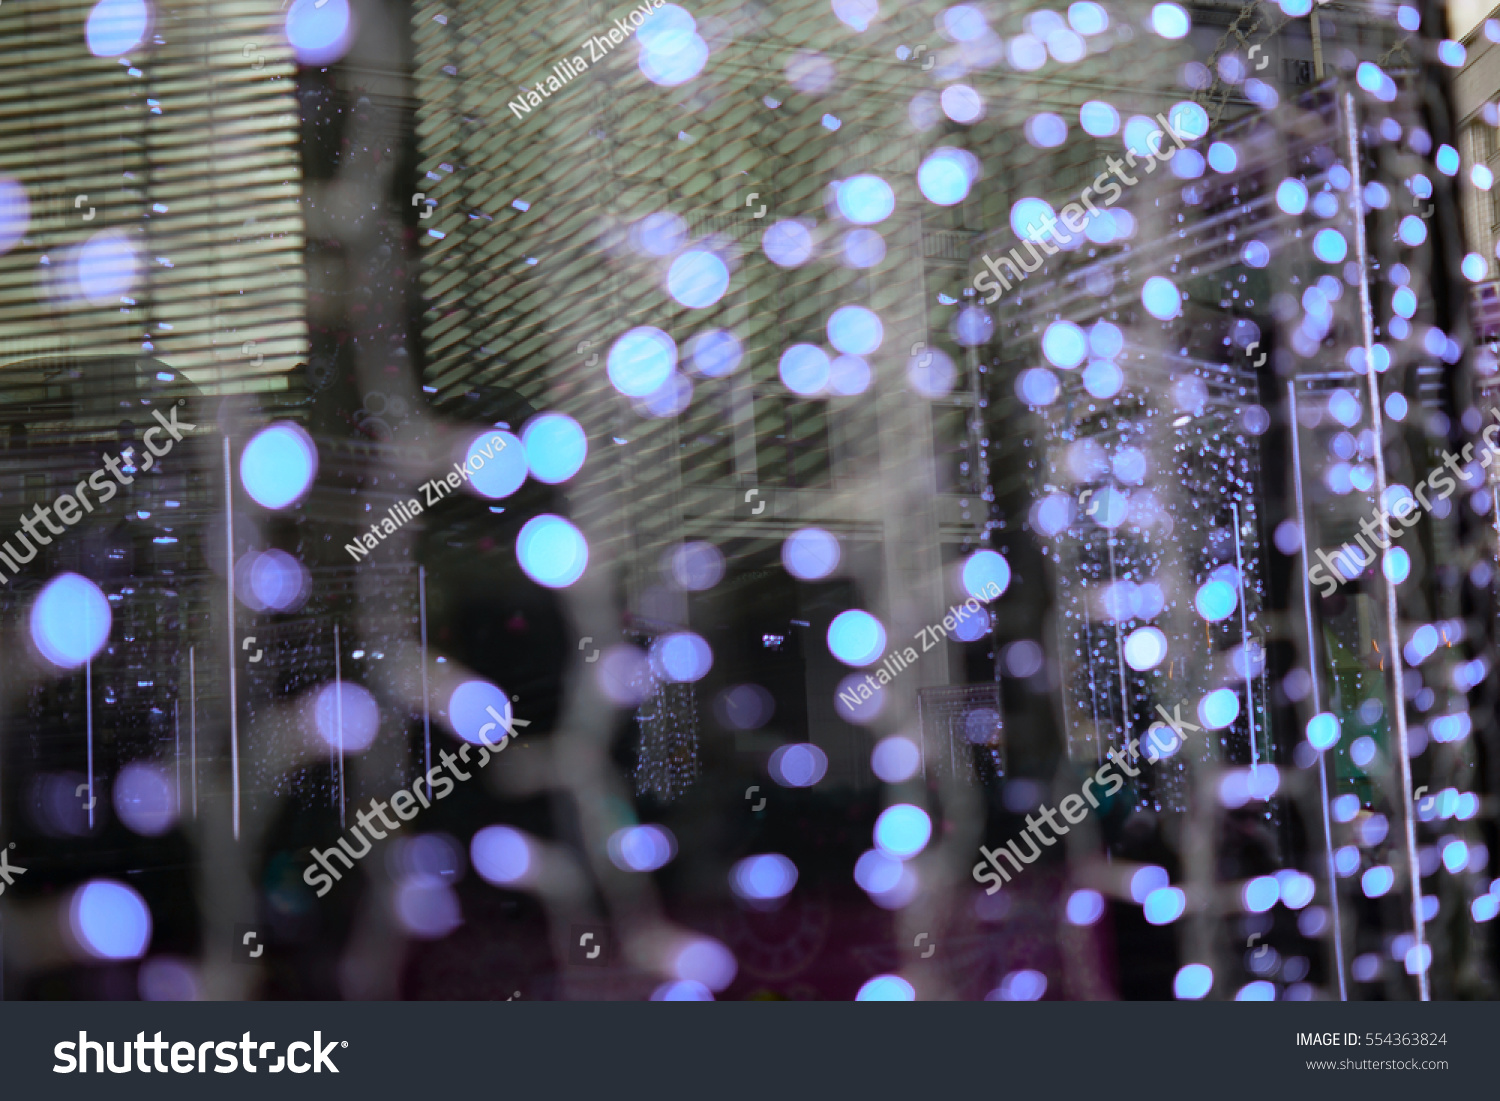 beautiful bokeh background for design christmas fair lights in the windows of stores outdoors